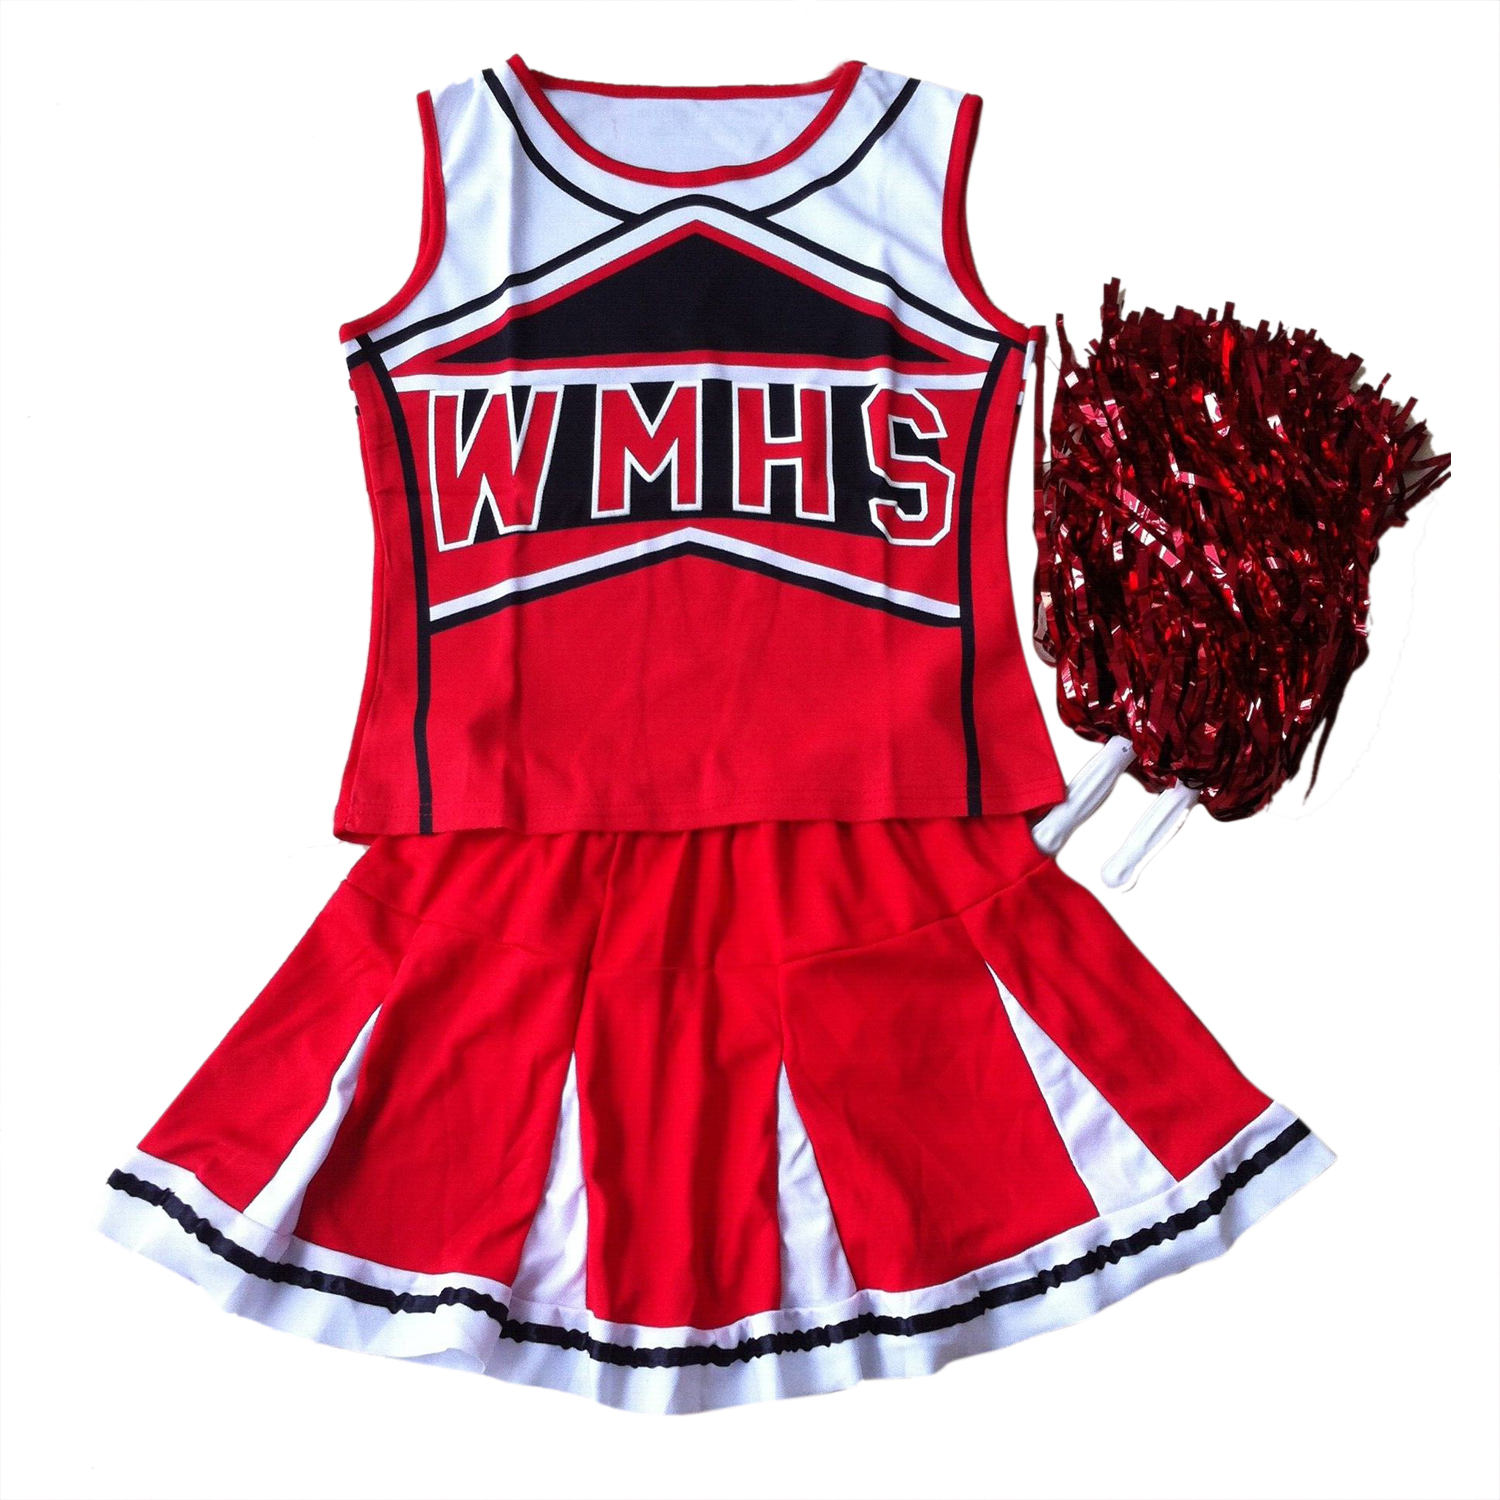 ELOS-Tank top Petticoat Pom cheerleader cheer leaders S (30-32) 2 piece suit new red costume